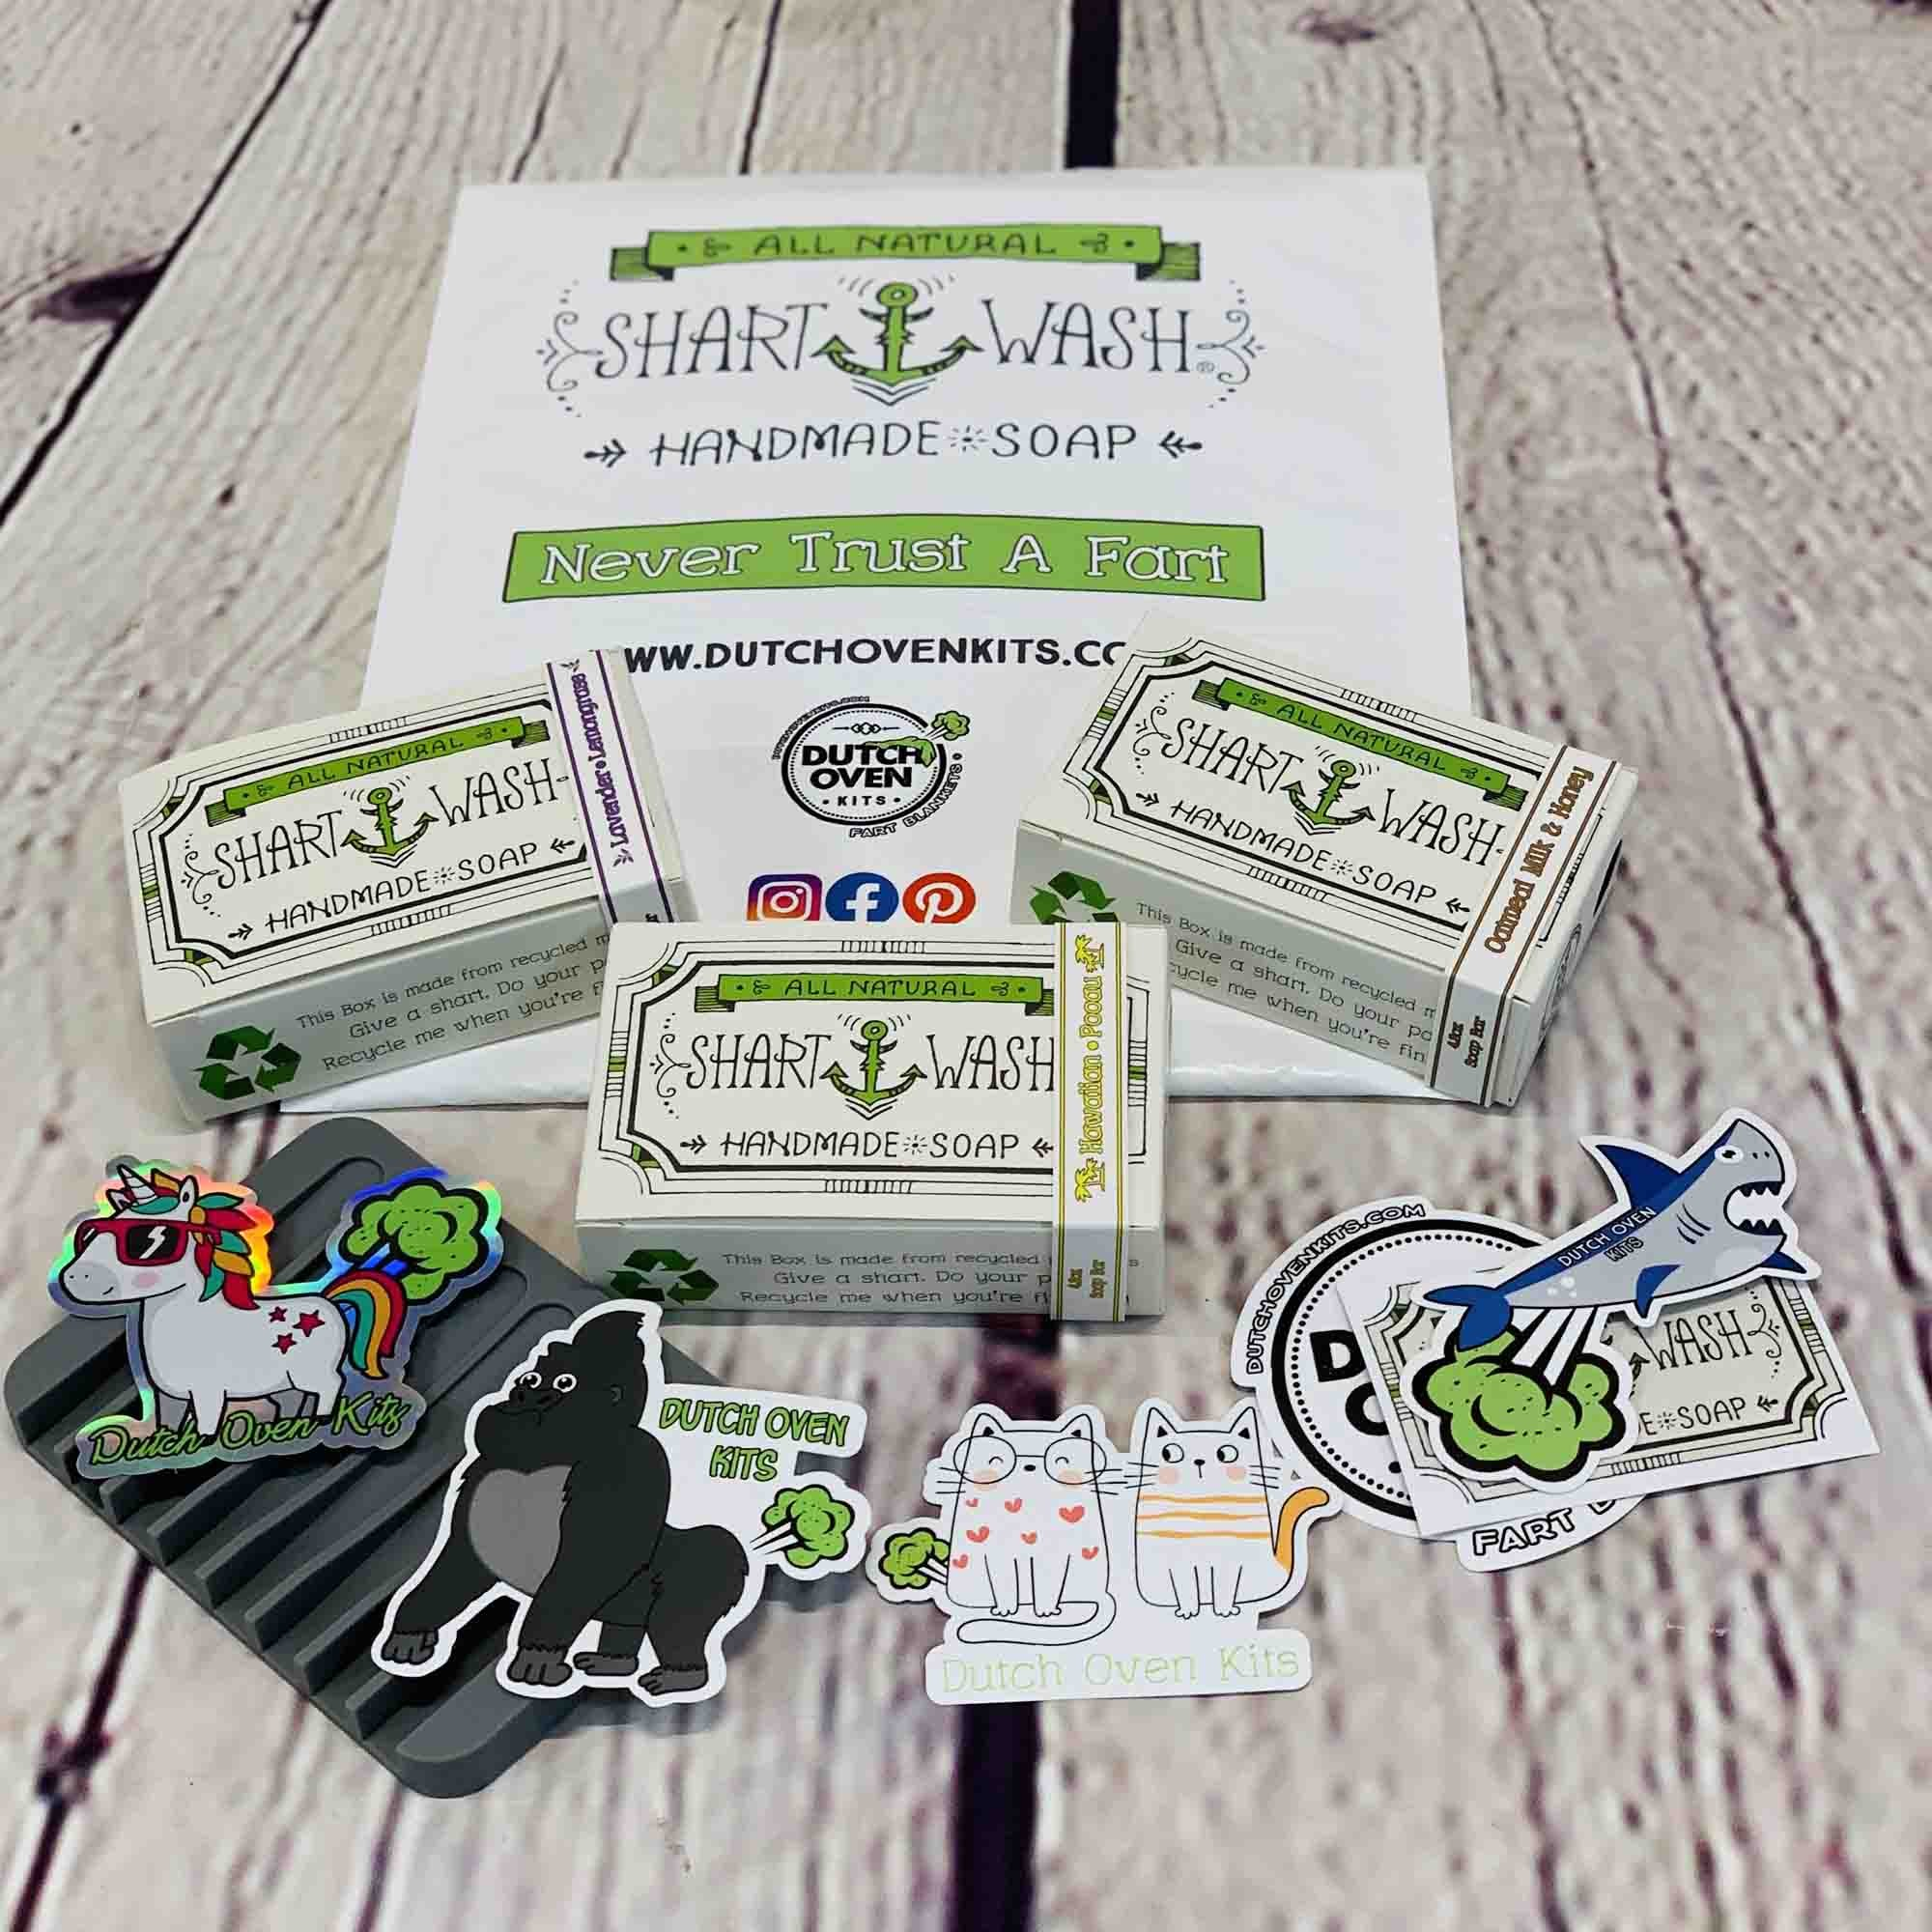 picture of 3 bars of Shart Wash natural handmade soap bars, stickers, and a gray soap dish on a wood background